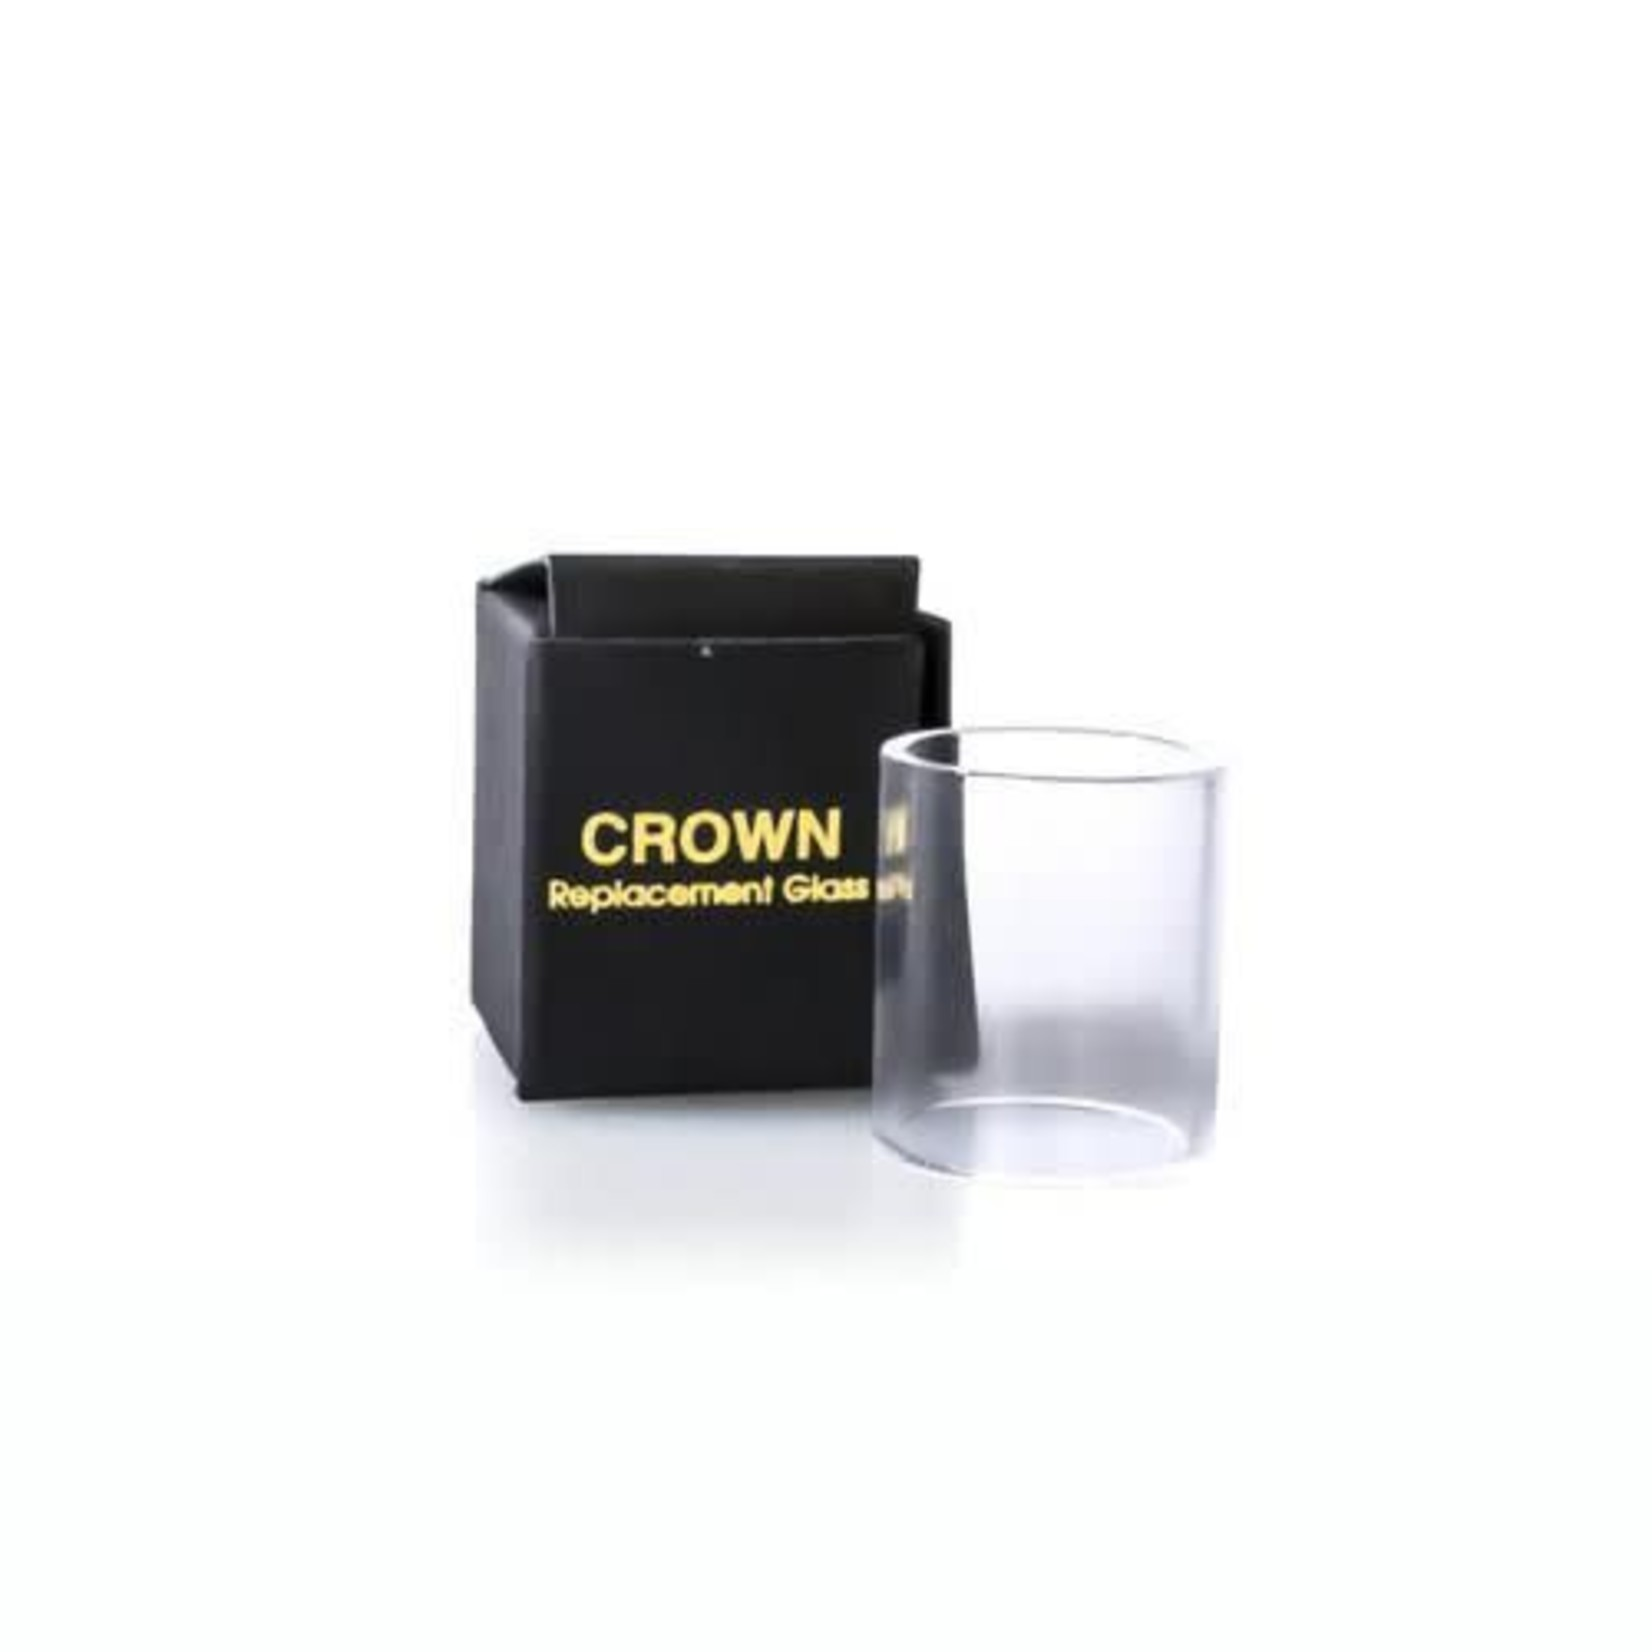 § Uwell Crown 3 Replacement Glass